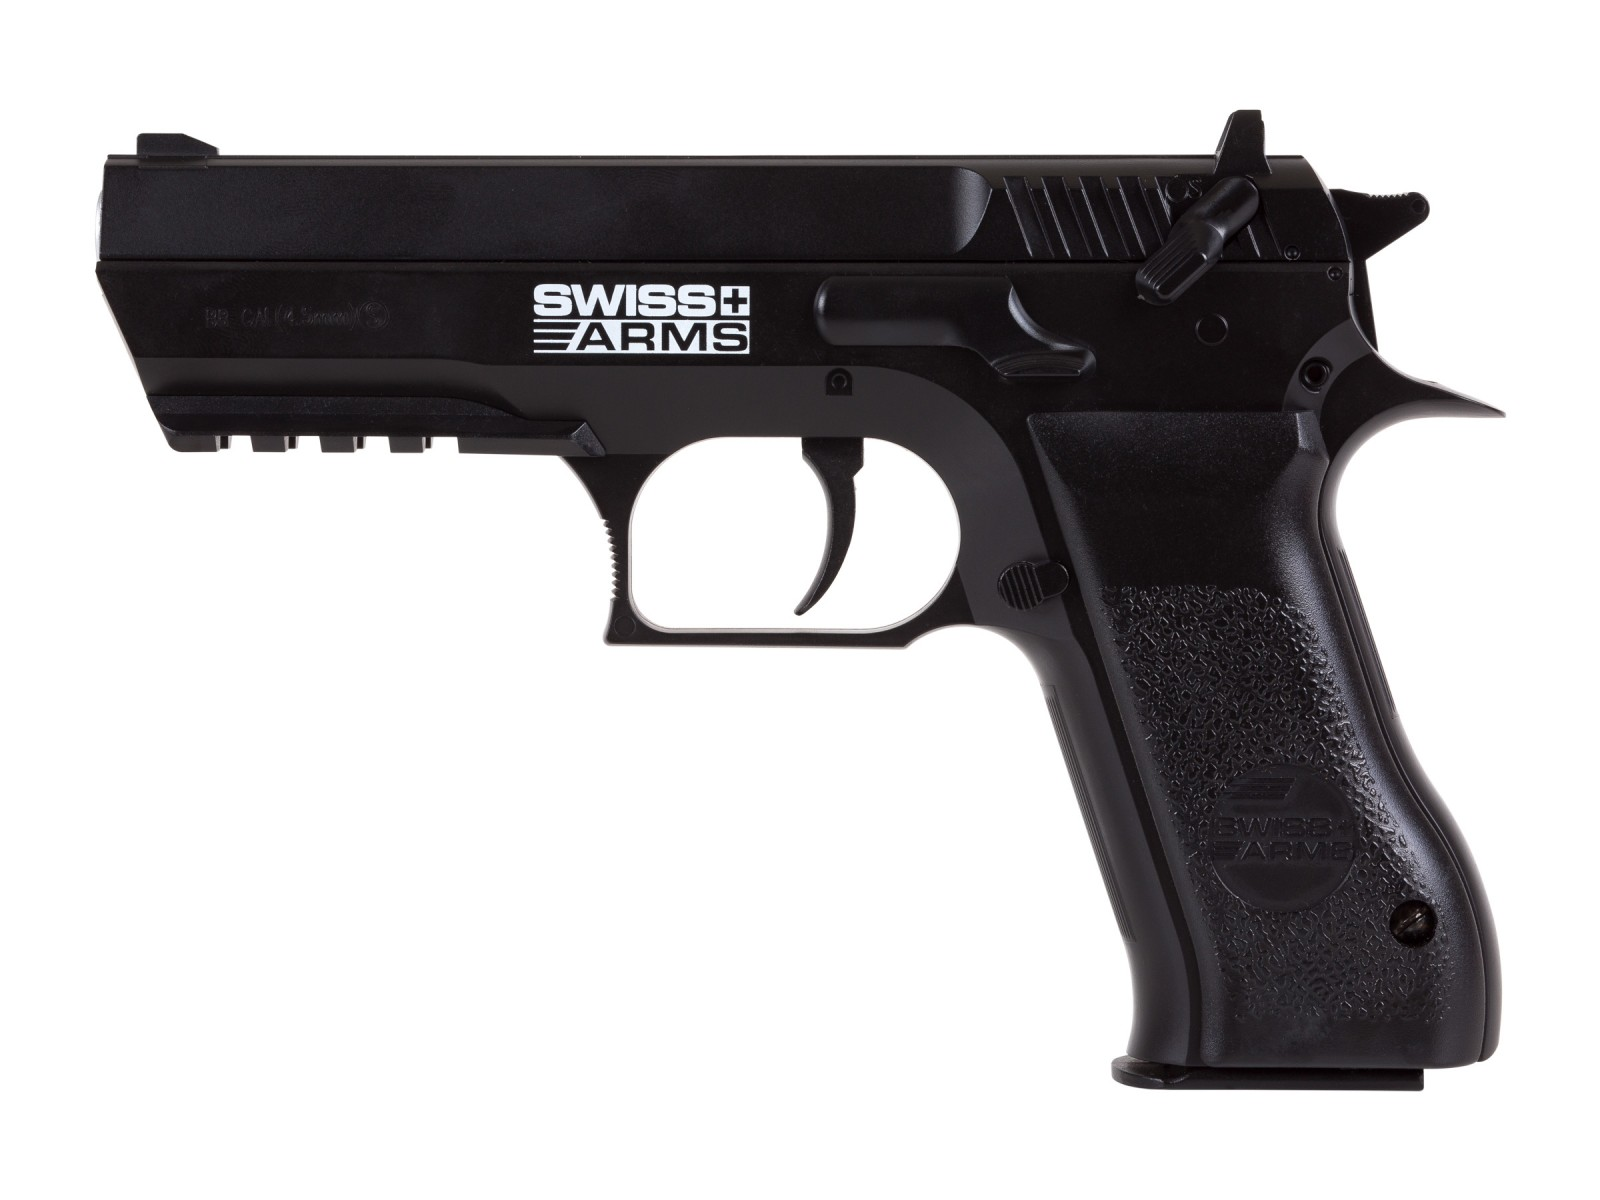 Swiss Arms 941 CO2 Pistol 0.177